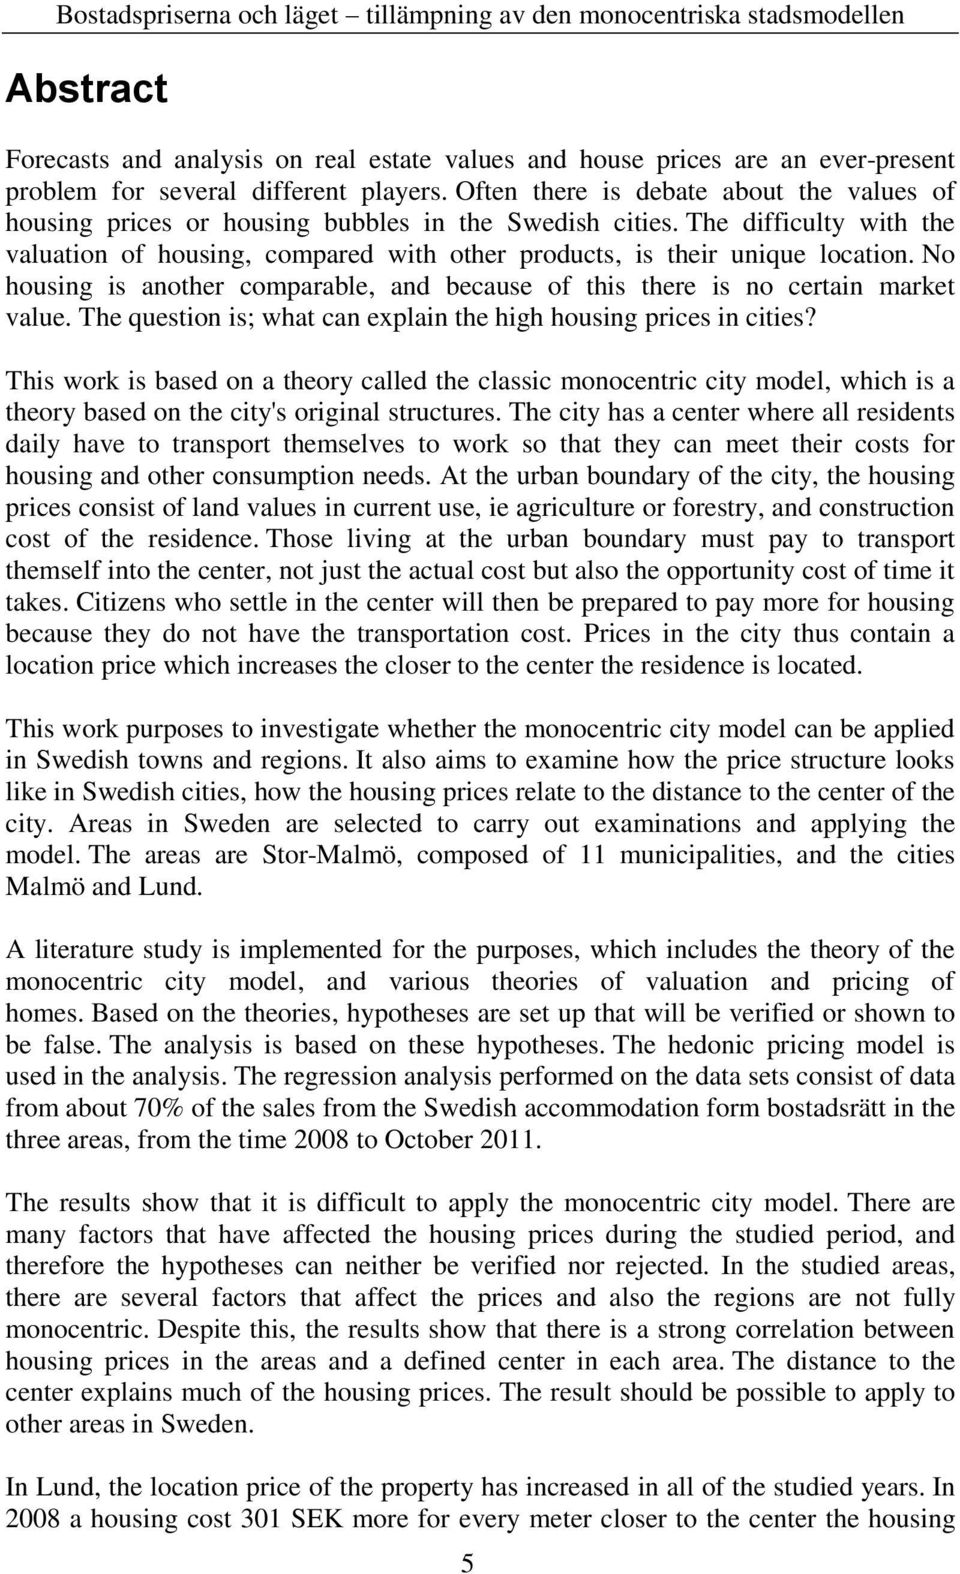 No housing is another comparable, and because of this there is no certain market value. The question is; what can explain the high housing prices in cities?